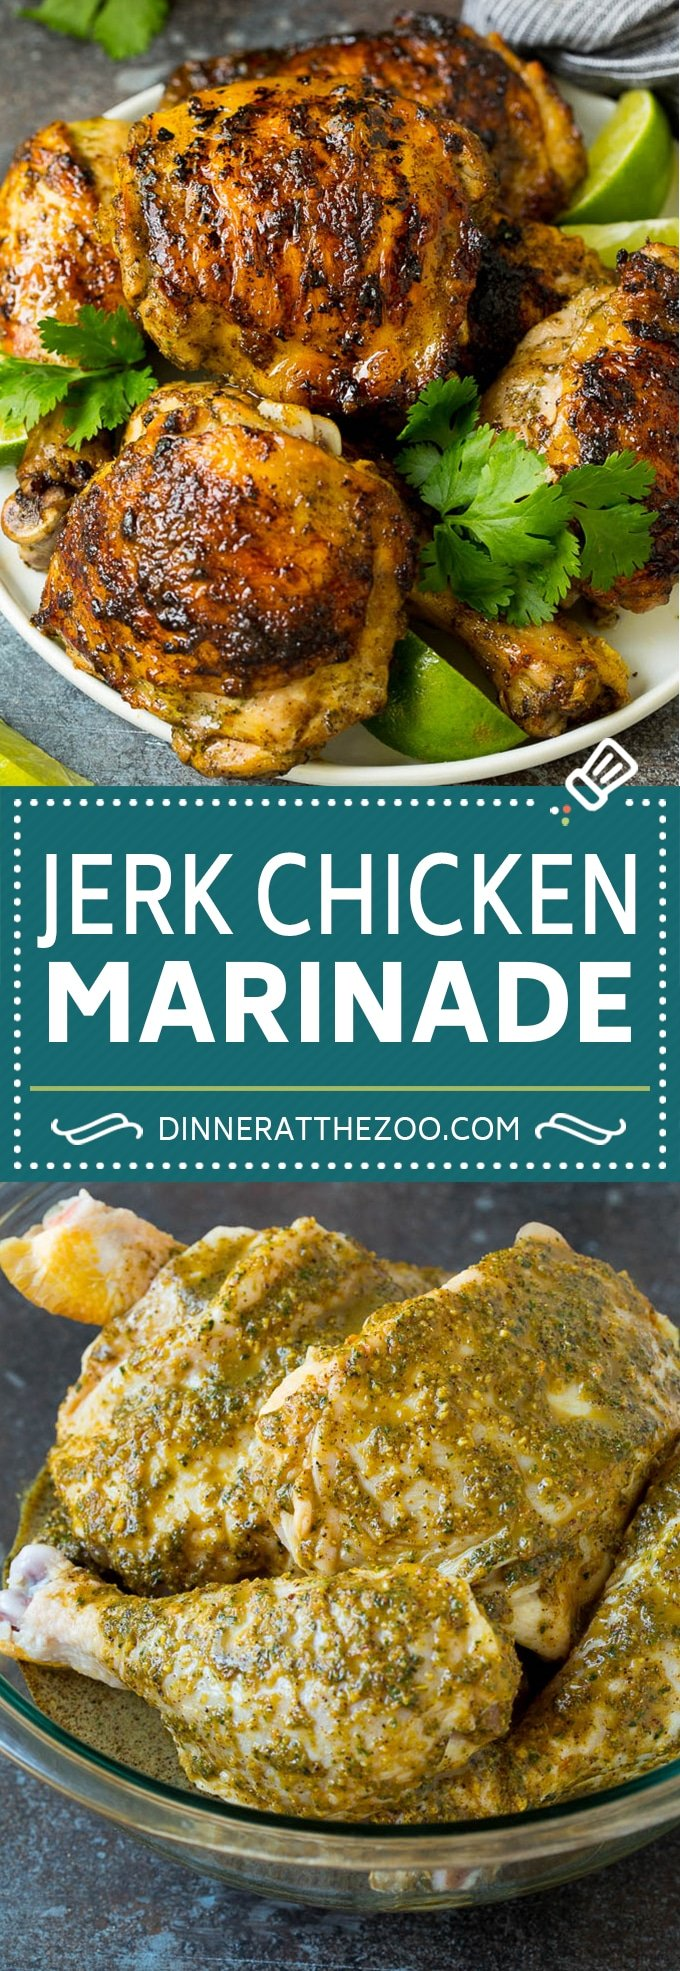 This jerk chicken marinade is a combination of olive oil, lime juice, fresh herbs, hot peppers and plenty of spices.